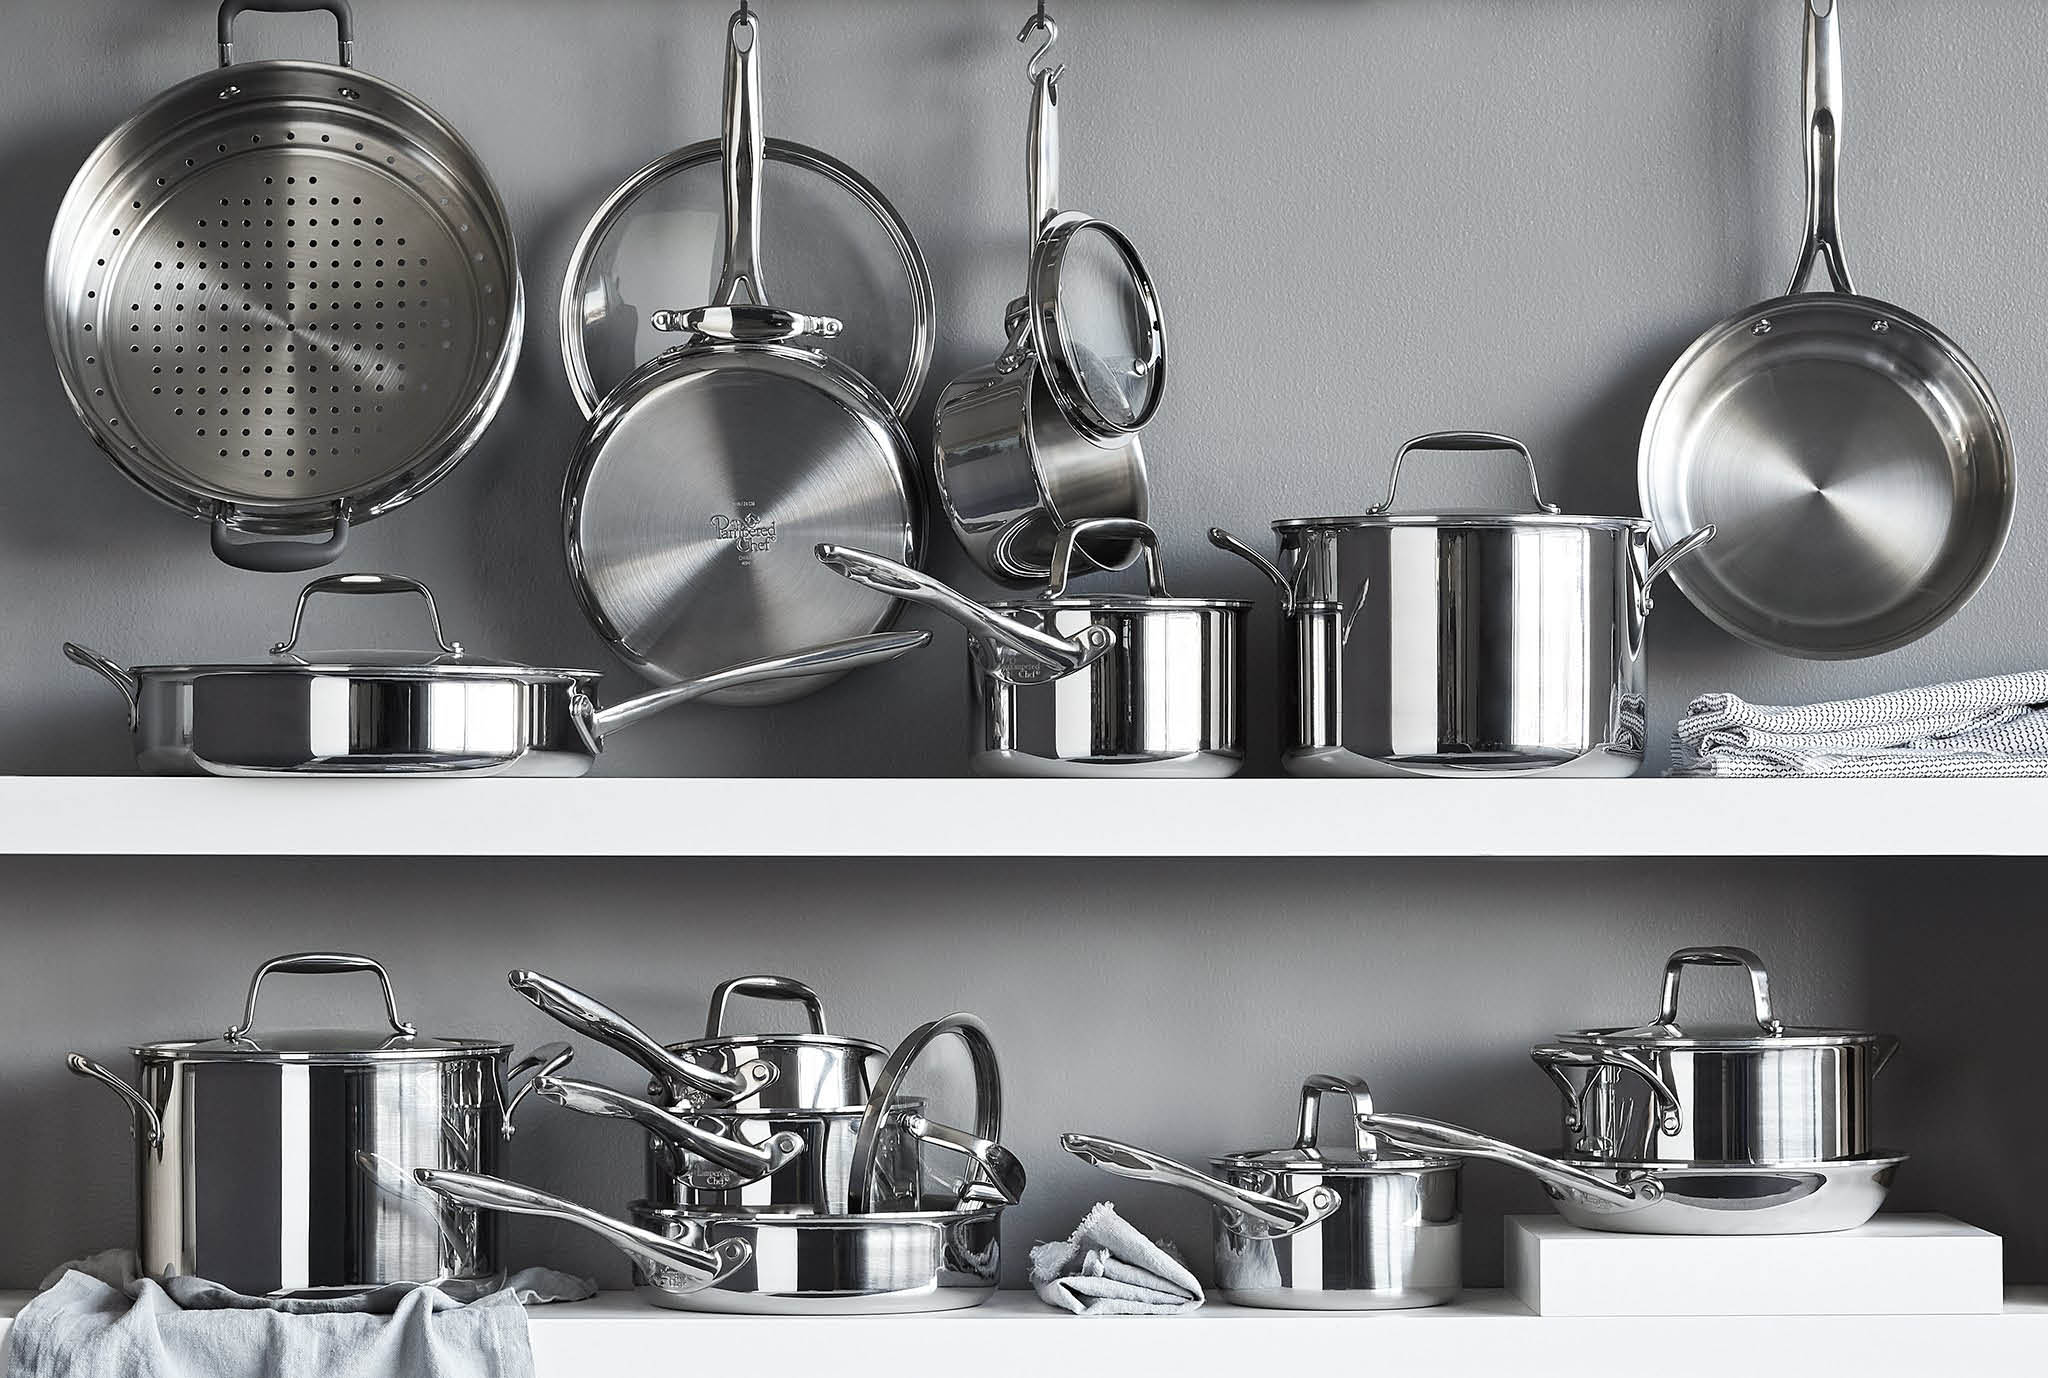 Cooking Tools, Cutlery, Bakeware, Cookware, Stoneware, Entertaining, Outdoor, Frozen Treats Sets, Kids, Food, Charitable Giving, Replacement Parts, Sale, Storage & Cleaning, Outlet; stevensville, md and surrounding